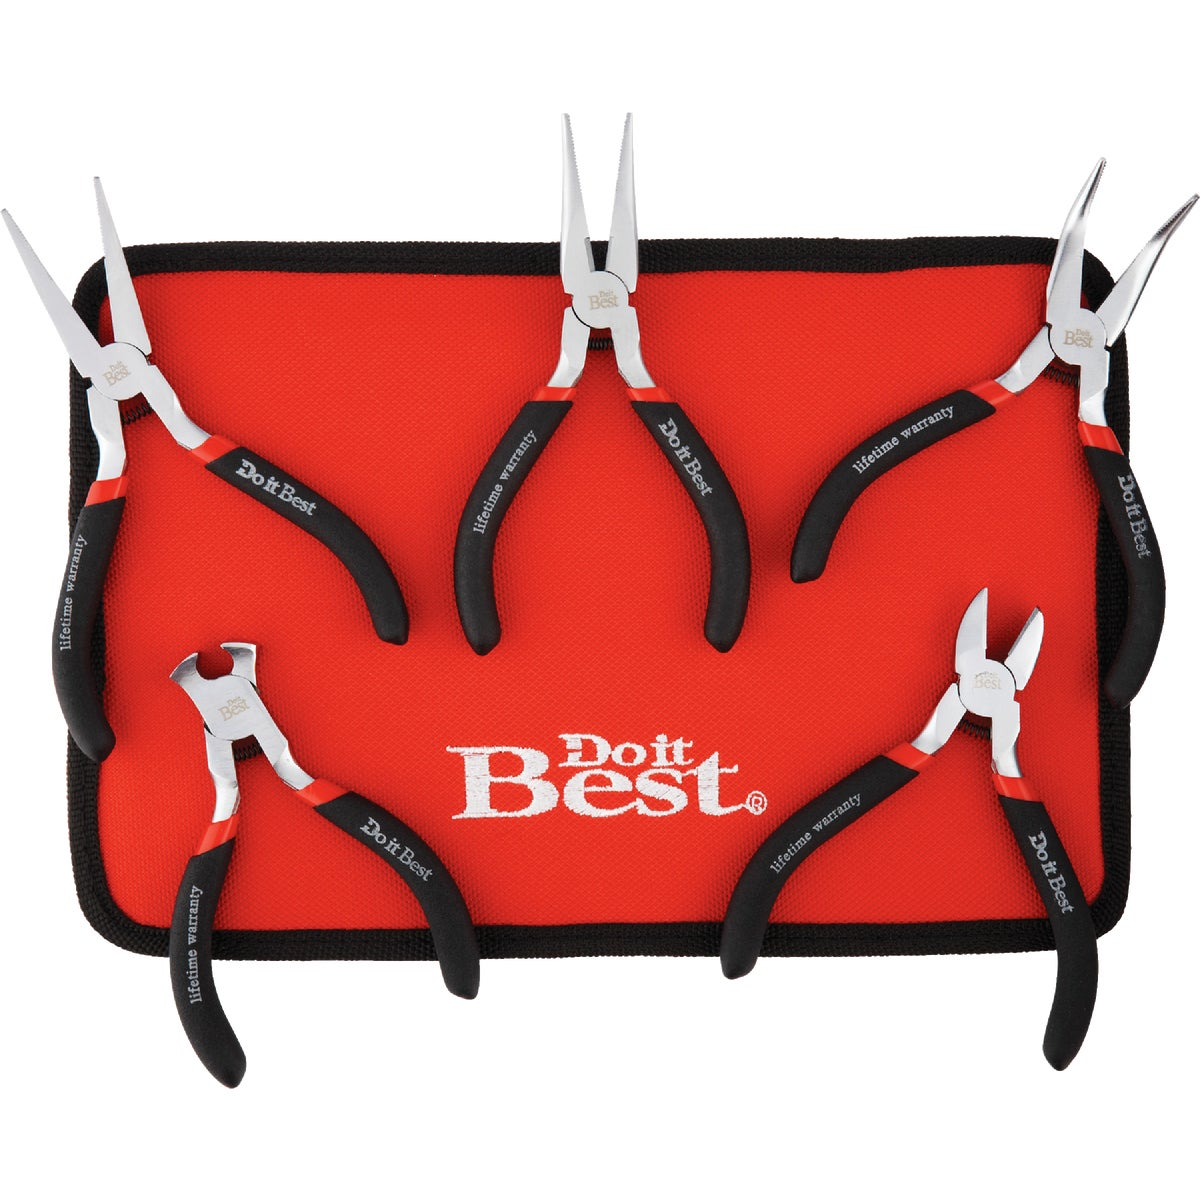 5PC HOBBY PLIERS SET